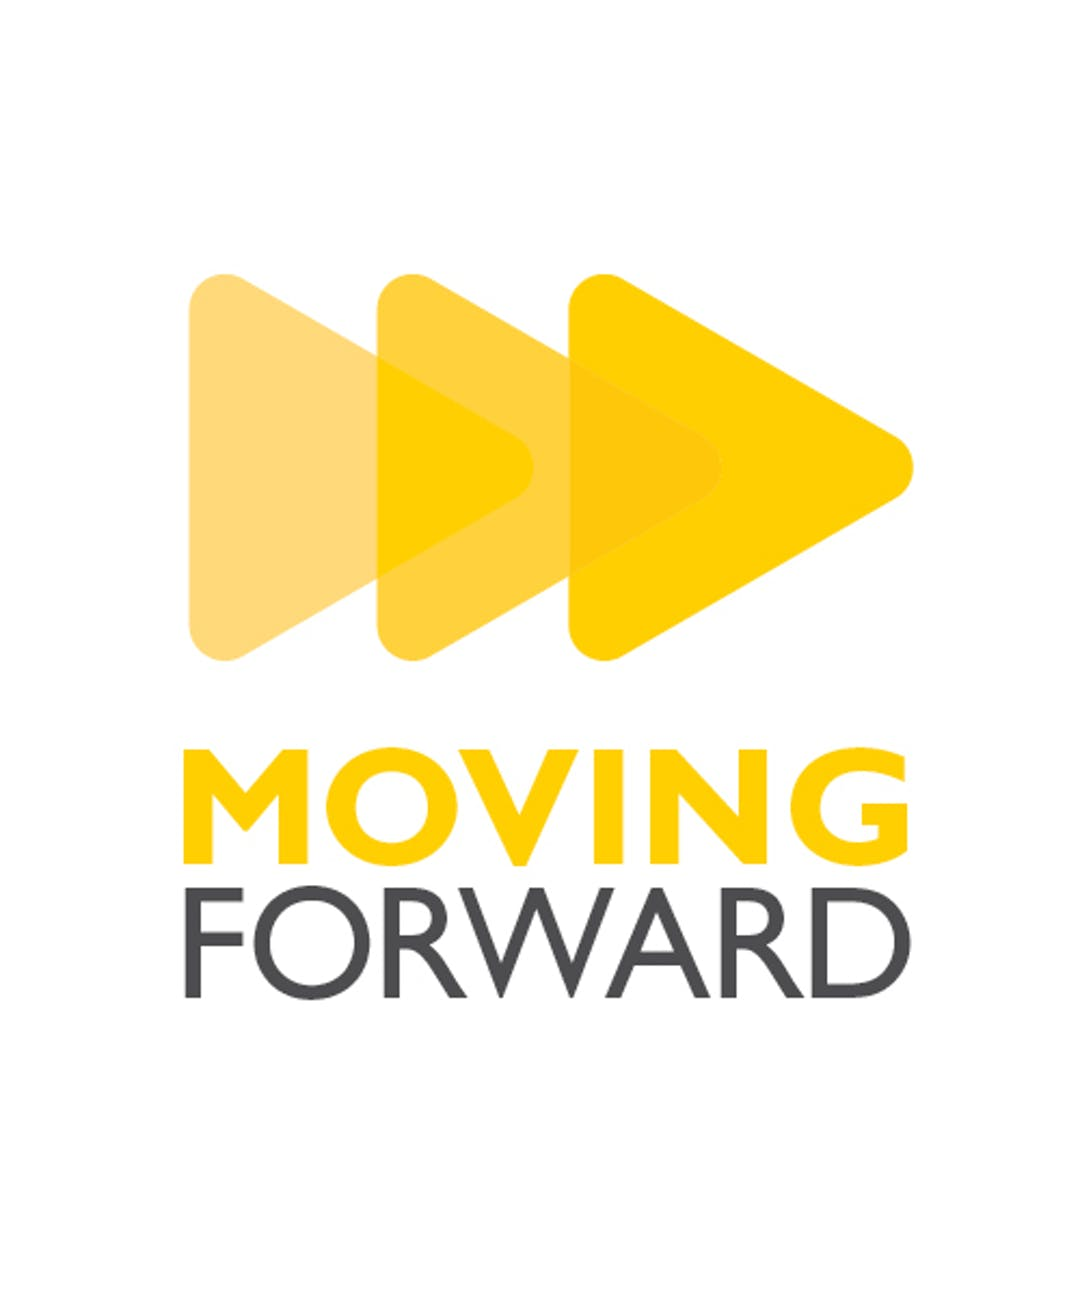 A logo that says Moving Forward